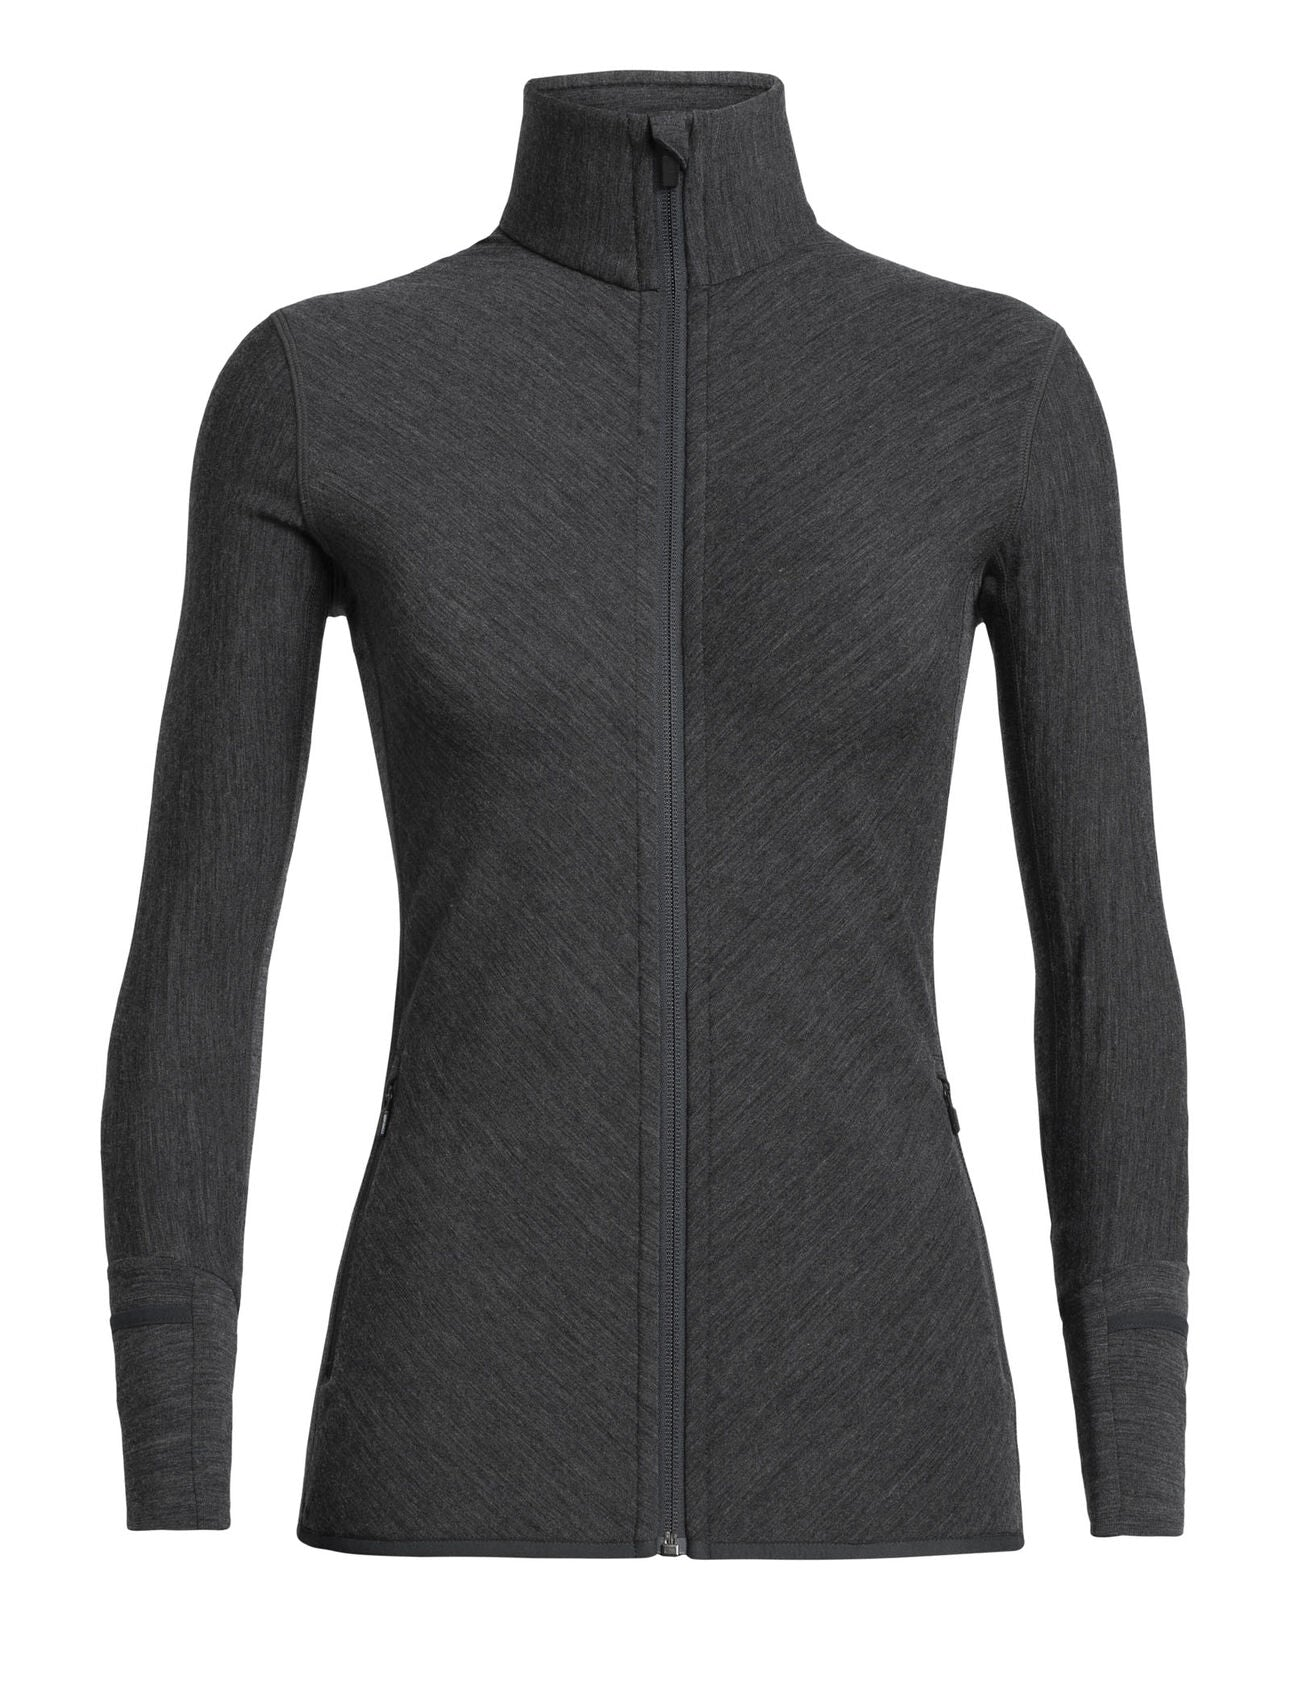 Icebreaker Descender LS Zip (Women's) - Jet Heather - Find Your Feet Australia Hobart Launceston Tasmania